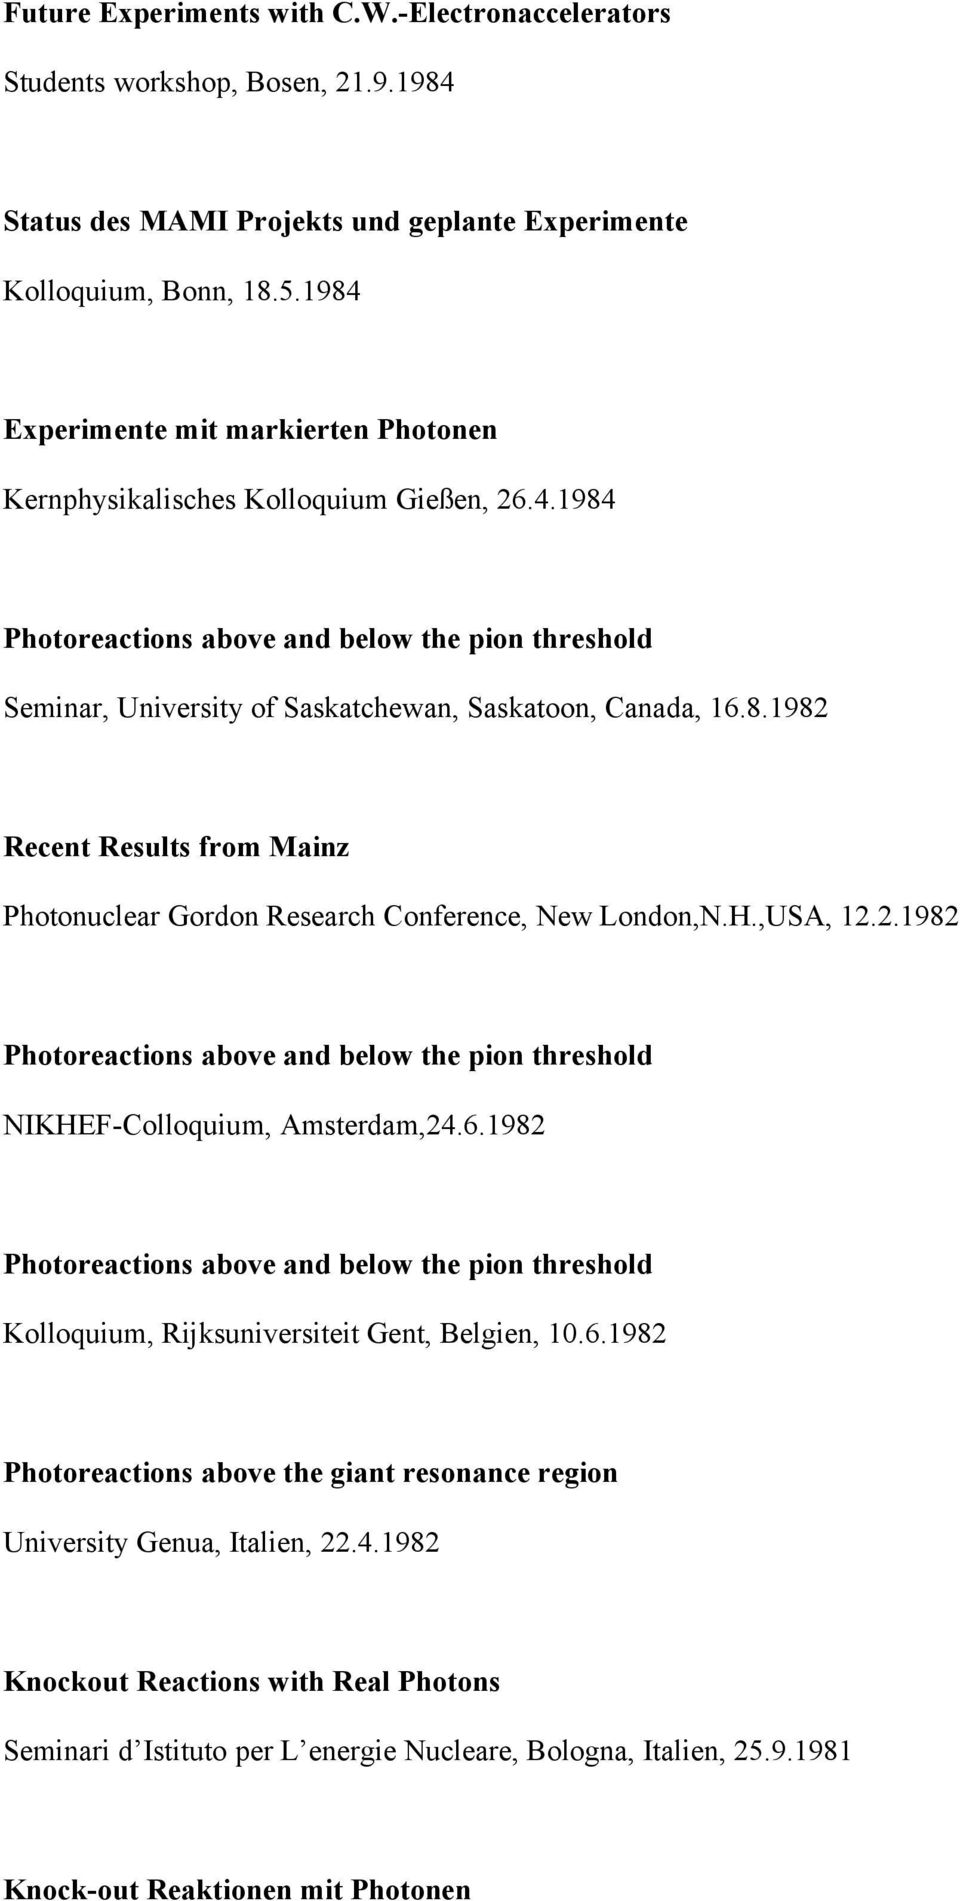 H.,USA, 12.2.1982 NIKHEF-Colloquium, Amsterdam,24.6.1982 Kolloquium, Rijksuniversiteit Gent, Belgien, 10.6.1982 Photoreactions above the giant resonance region University Genua, Italien, 22.